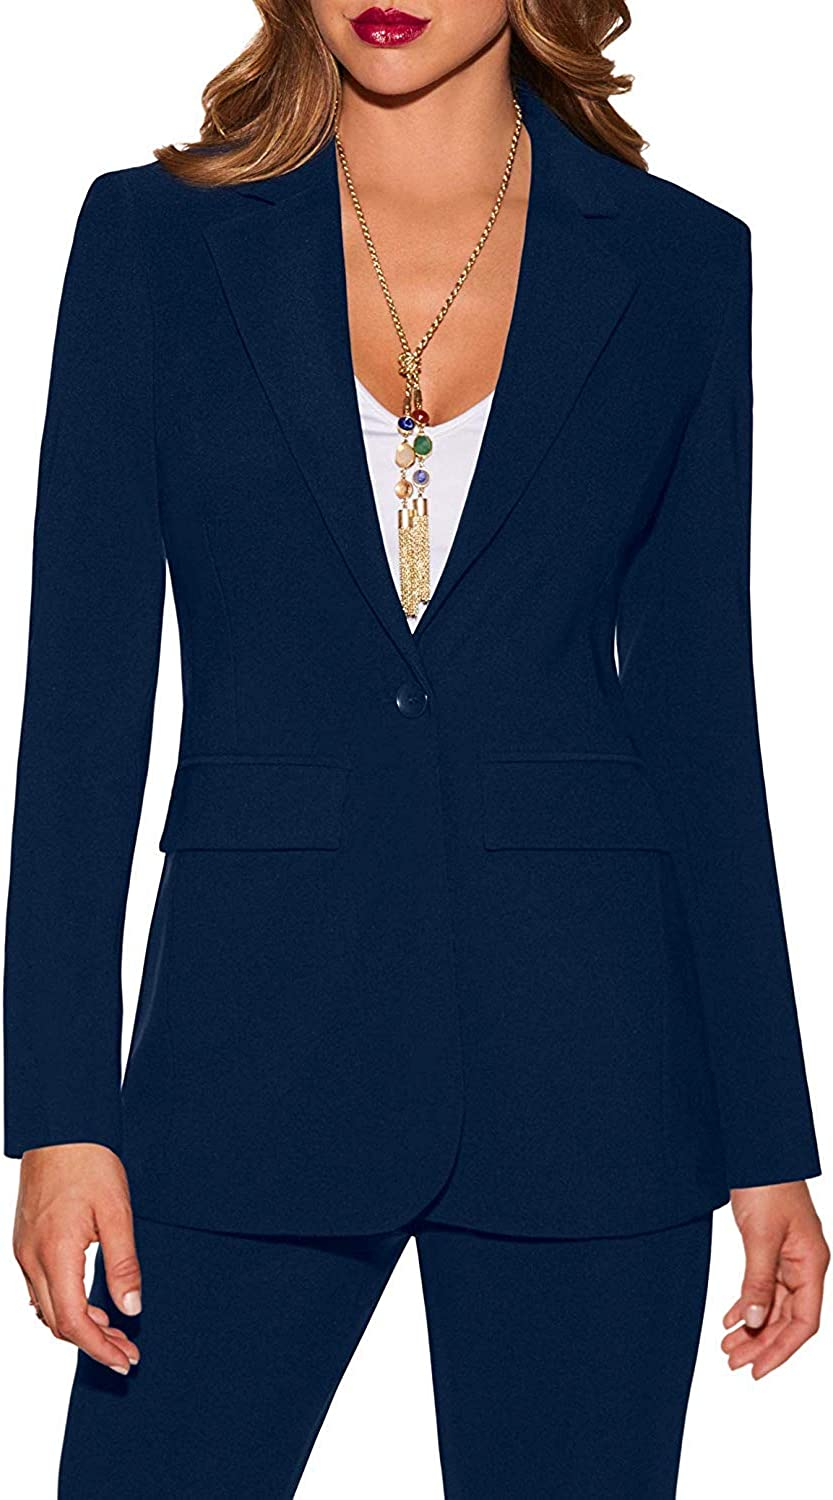 WZW Women's WrinkleResistant Classic One Button Solid color Blazer Pant Suit Set